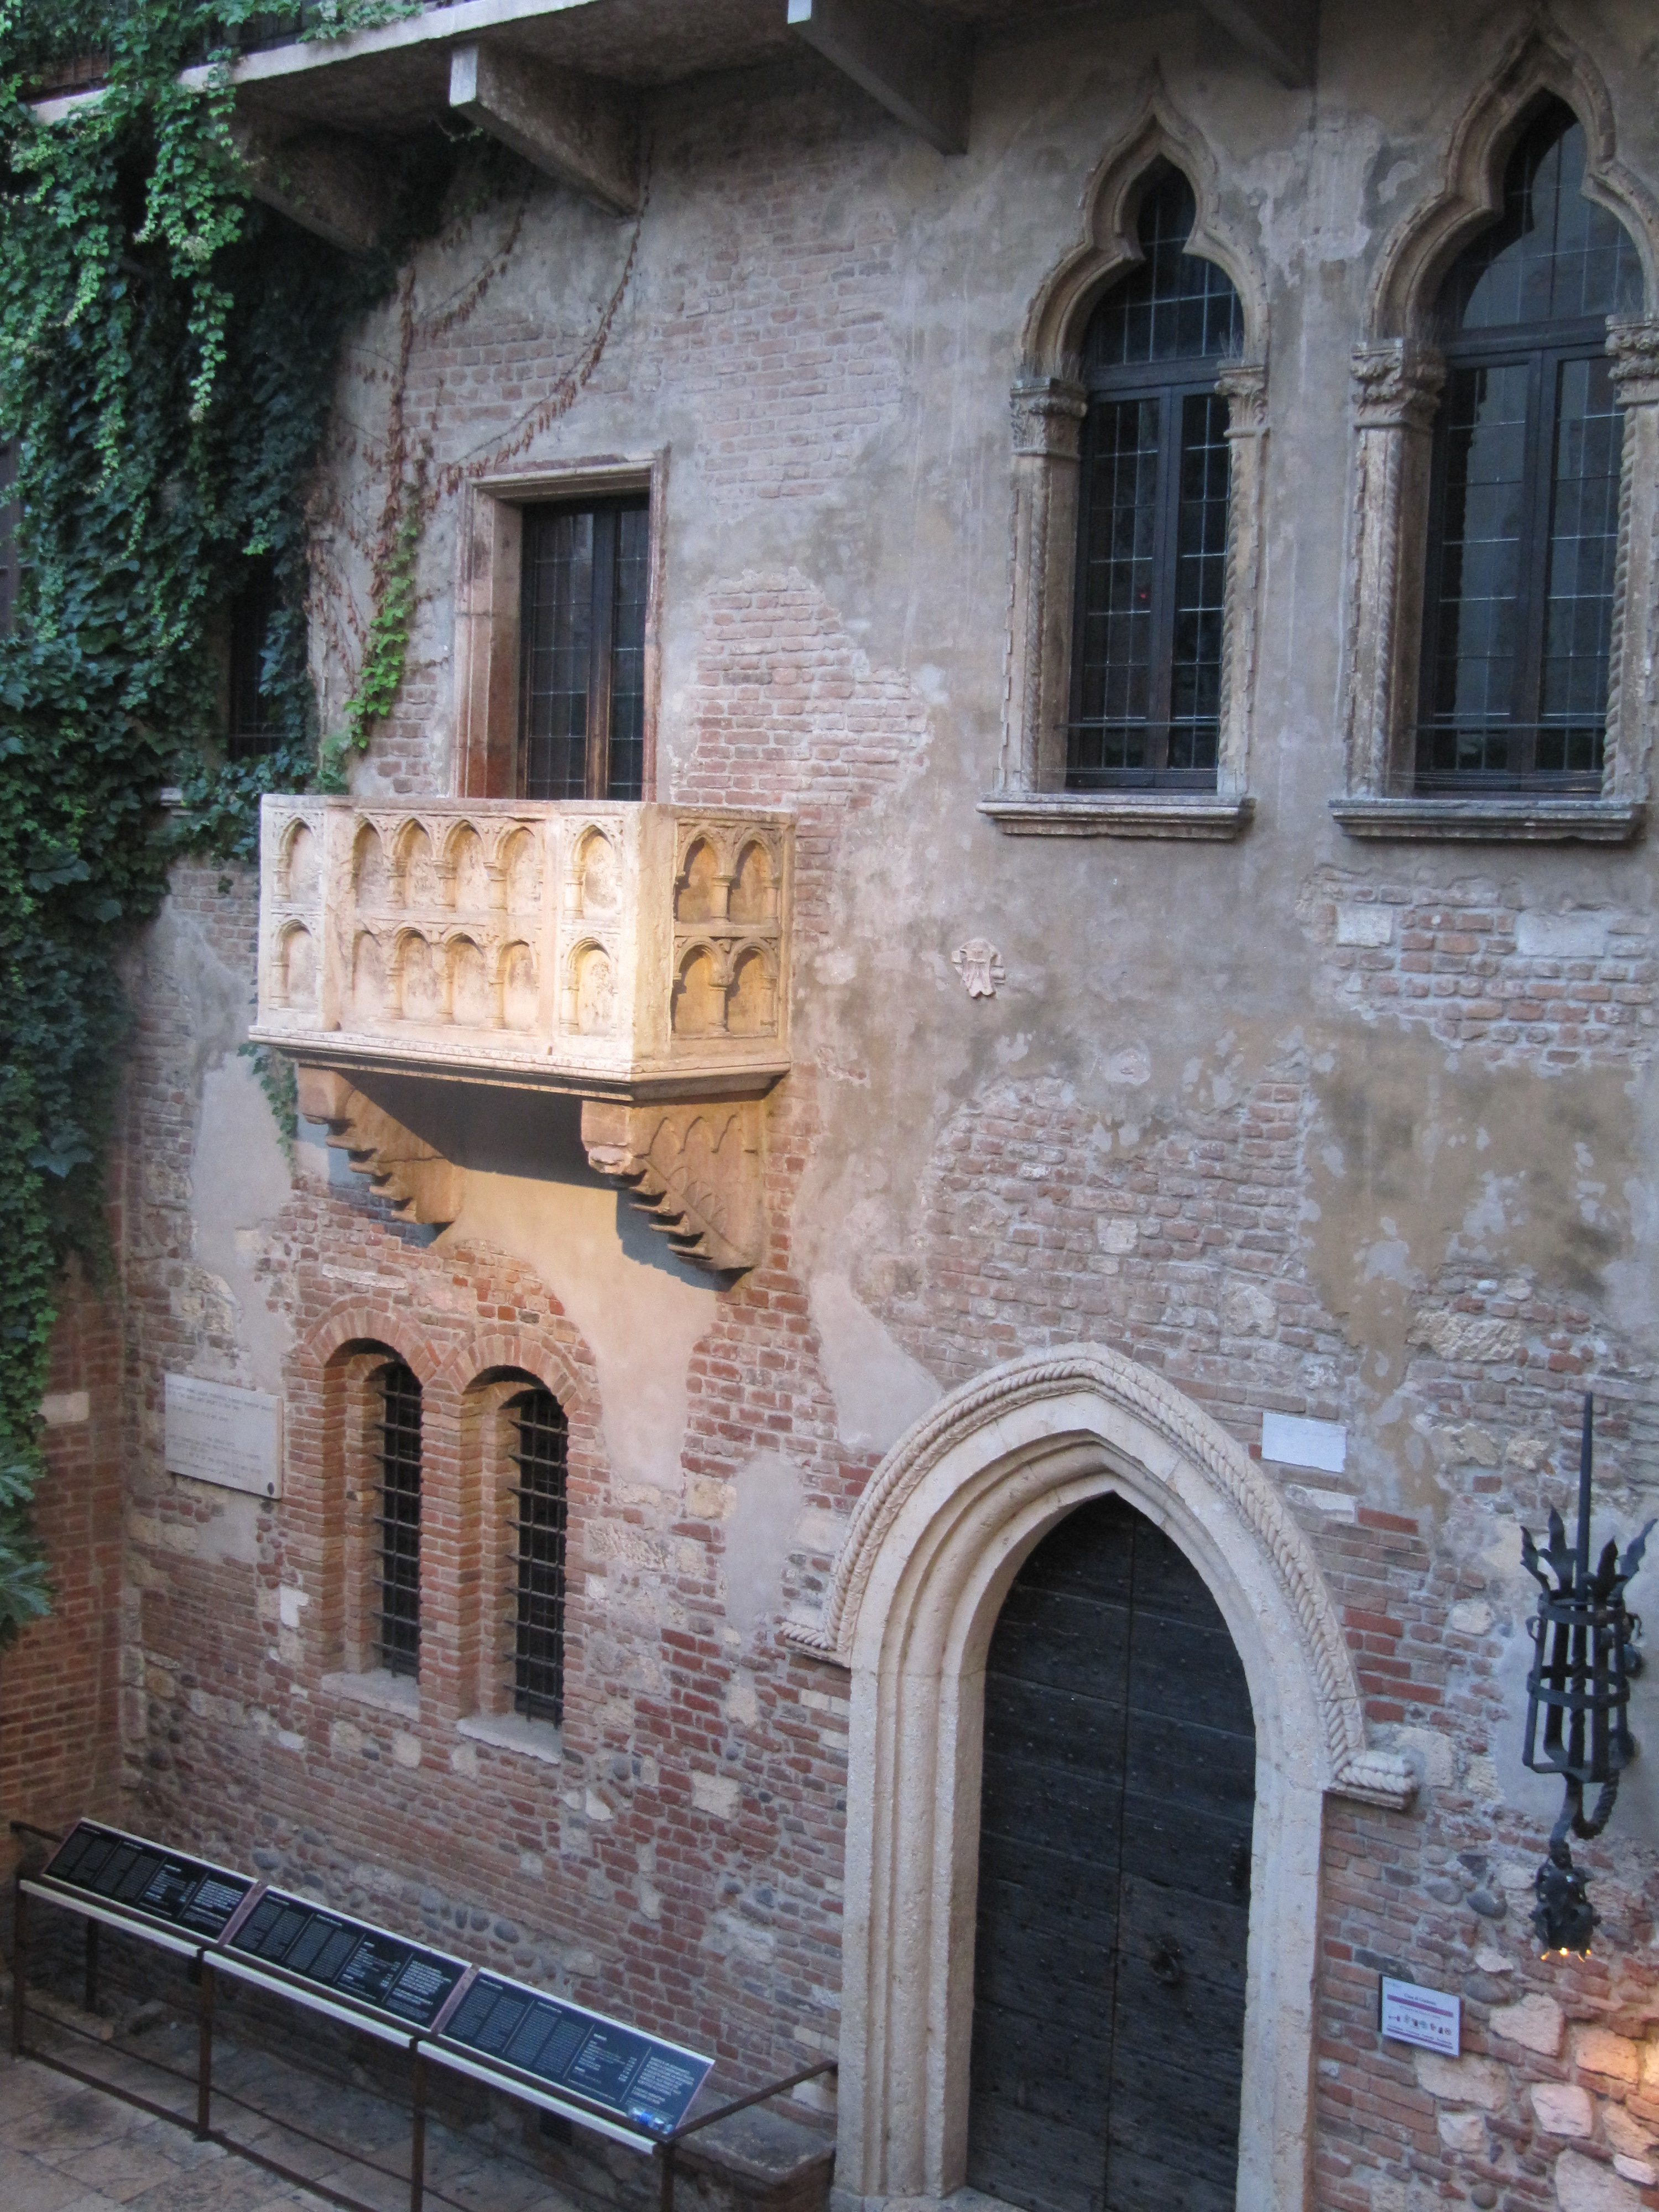 A letter to rosaline capulet in verona italy